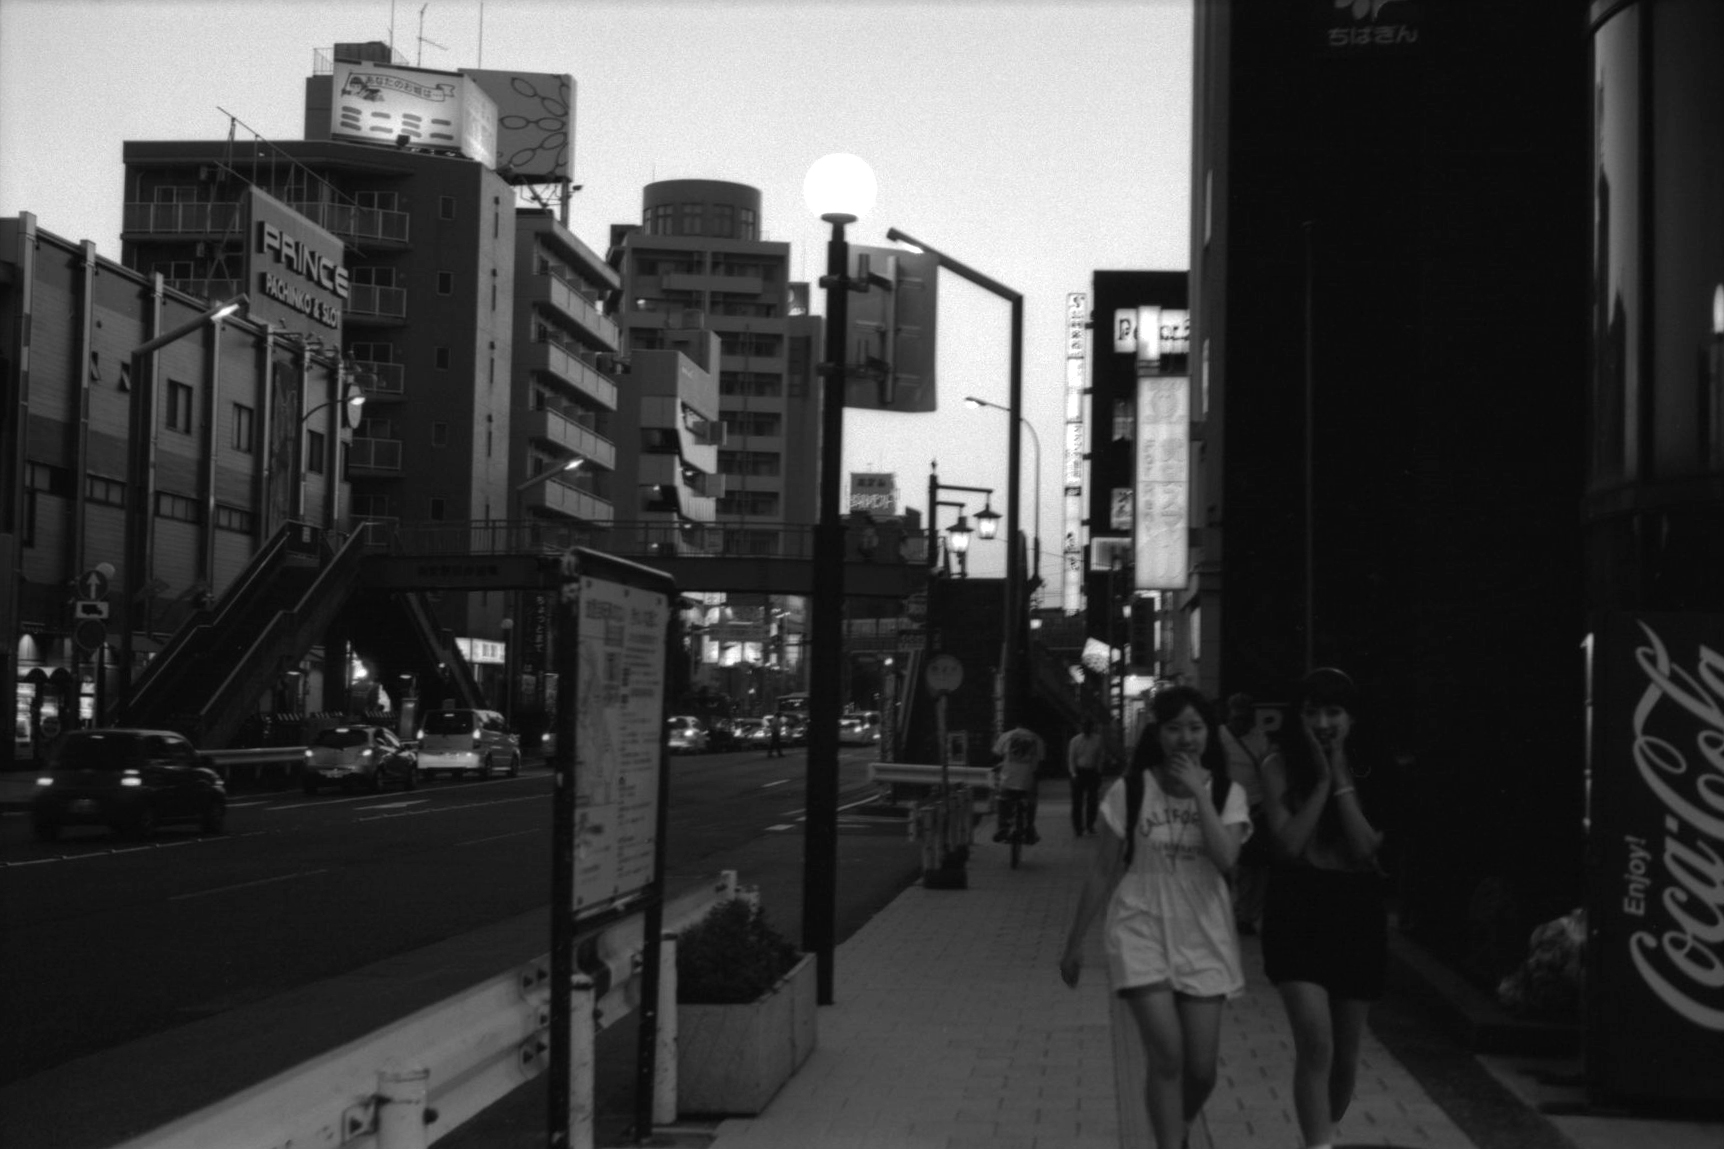 2013 0919 leica3f summarit50 ne100ac microfine 020